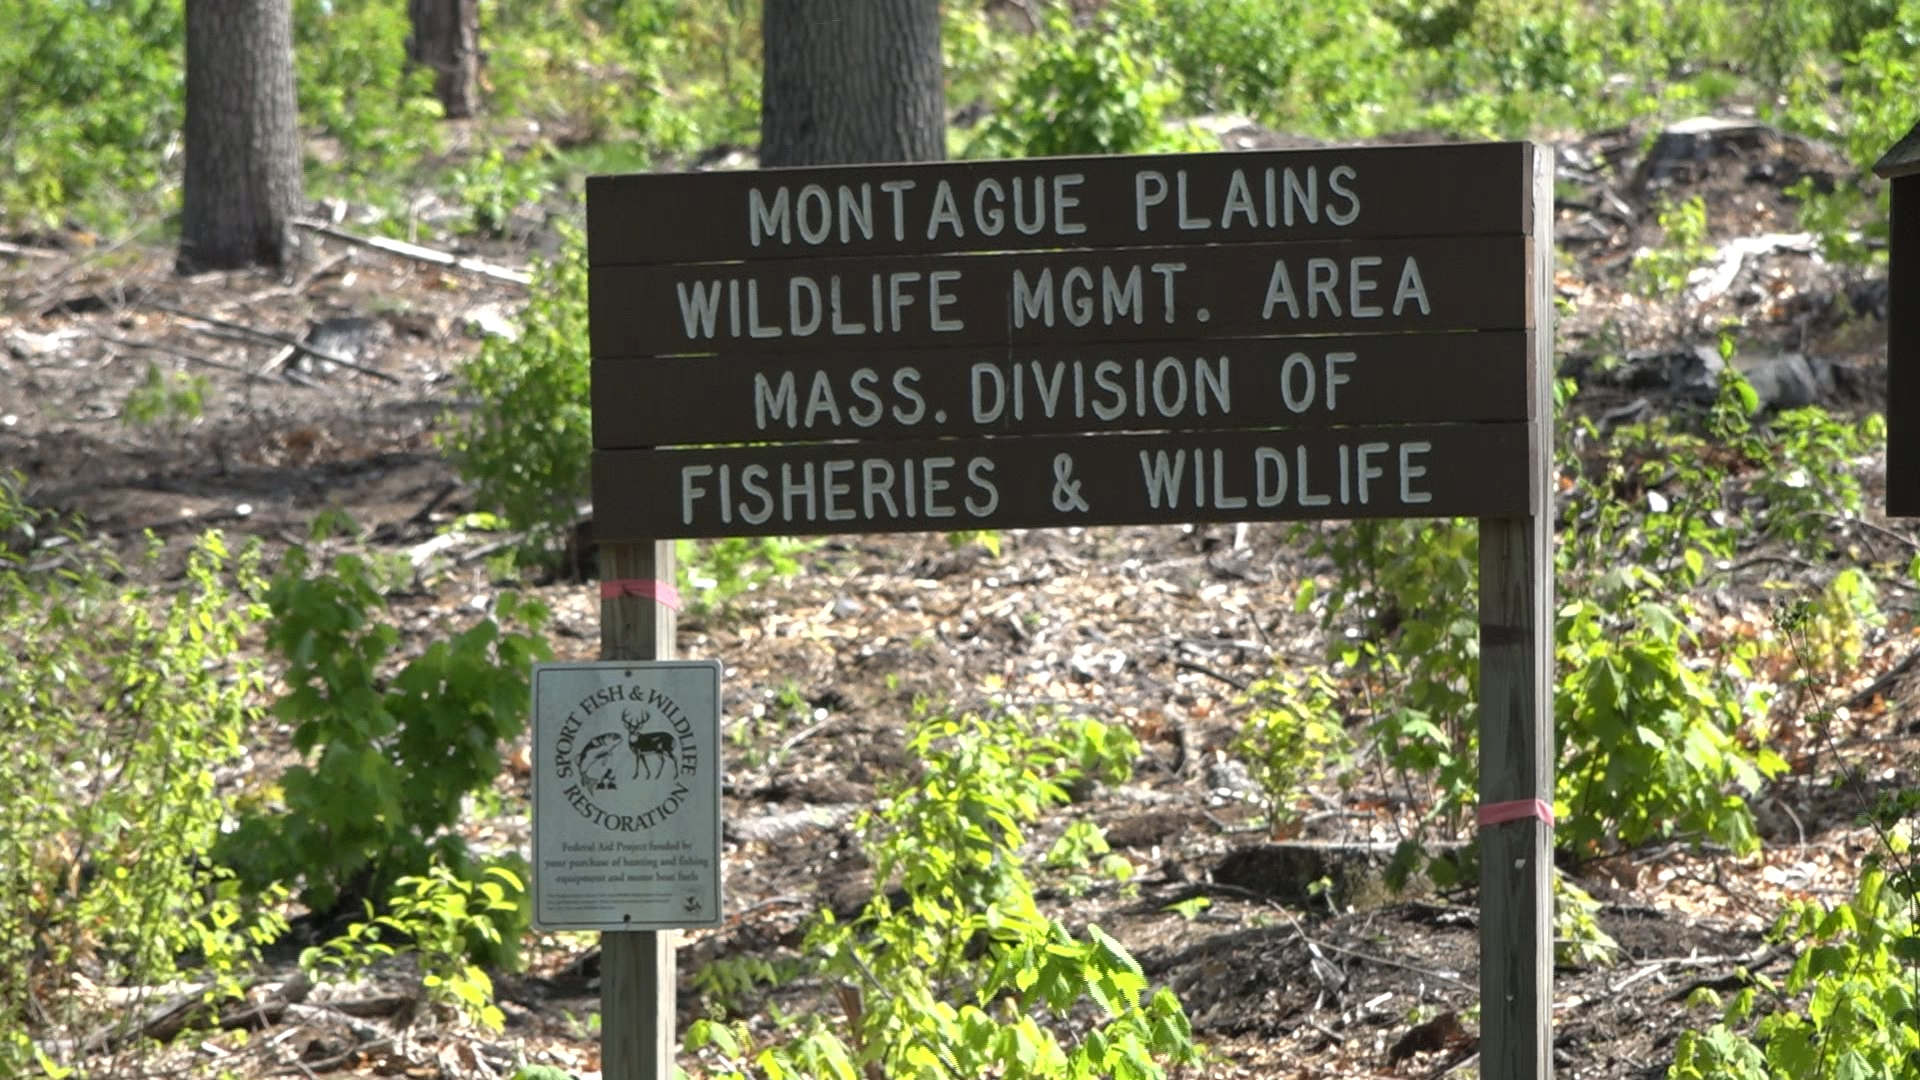 Explore Montague Plains, a large sand delta formed more than 10,000 years ago by melt from retreating glaciers and now home to many rare plants and animals.